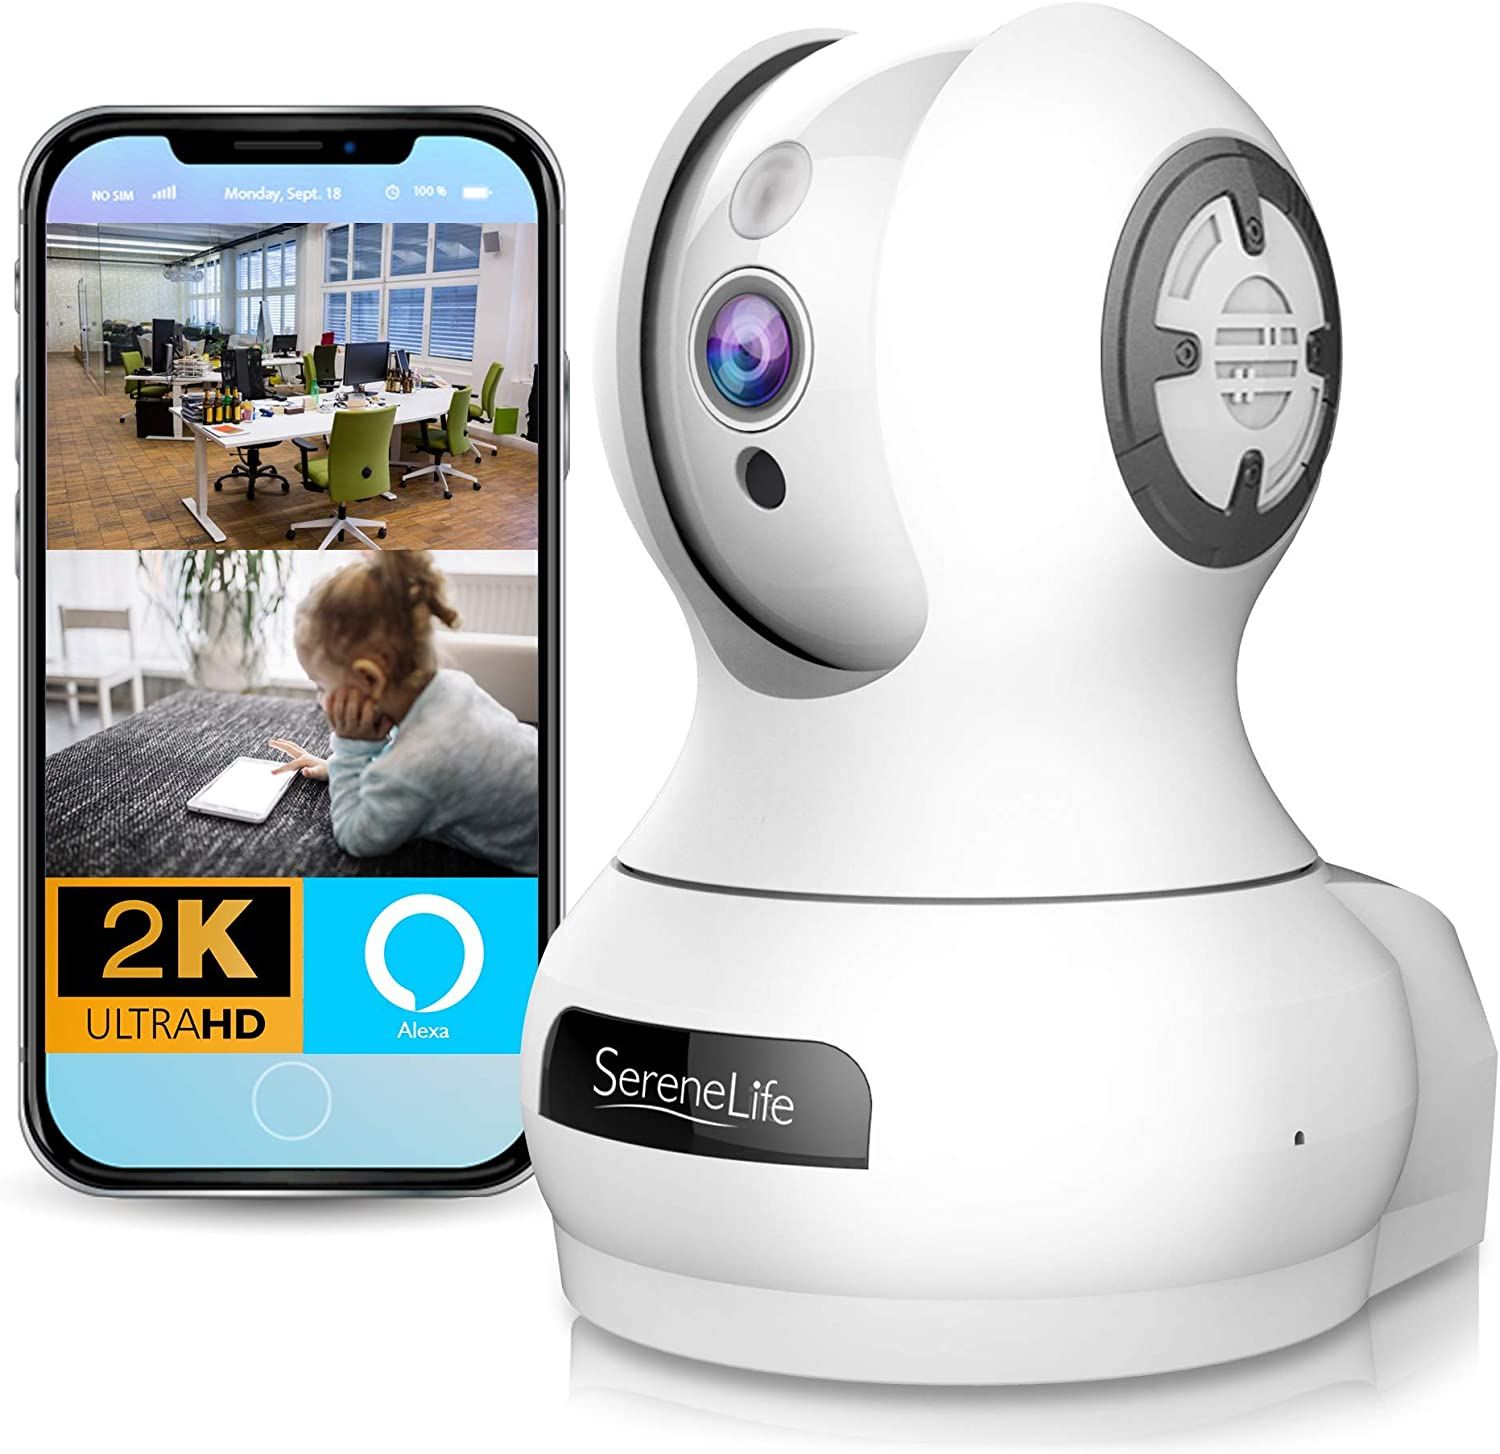 SereneLife 3MP Indoor Cloud Cam – Alexa Compatible – Face Detection Smart Tracking PTZ – Ultra HD 1536p Wireless Home Security Pet Monitoring w Motion Detect, Night Vision Video – IPCAMHD85